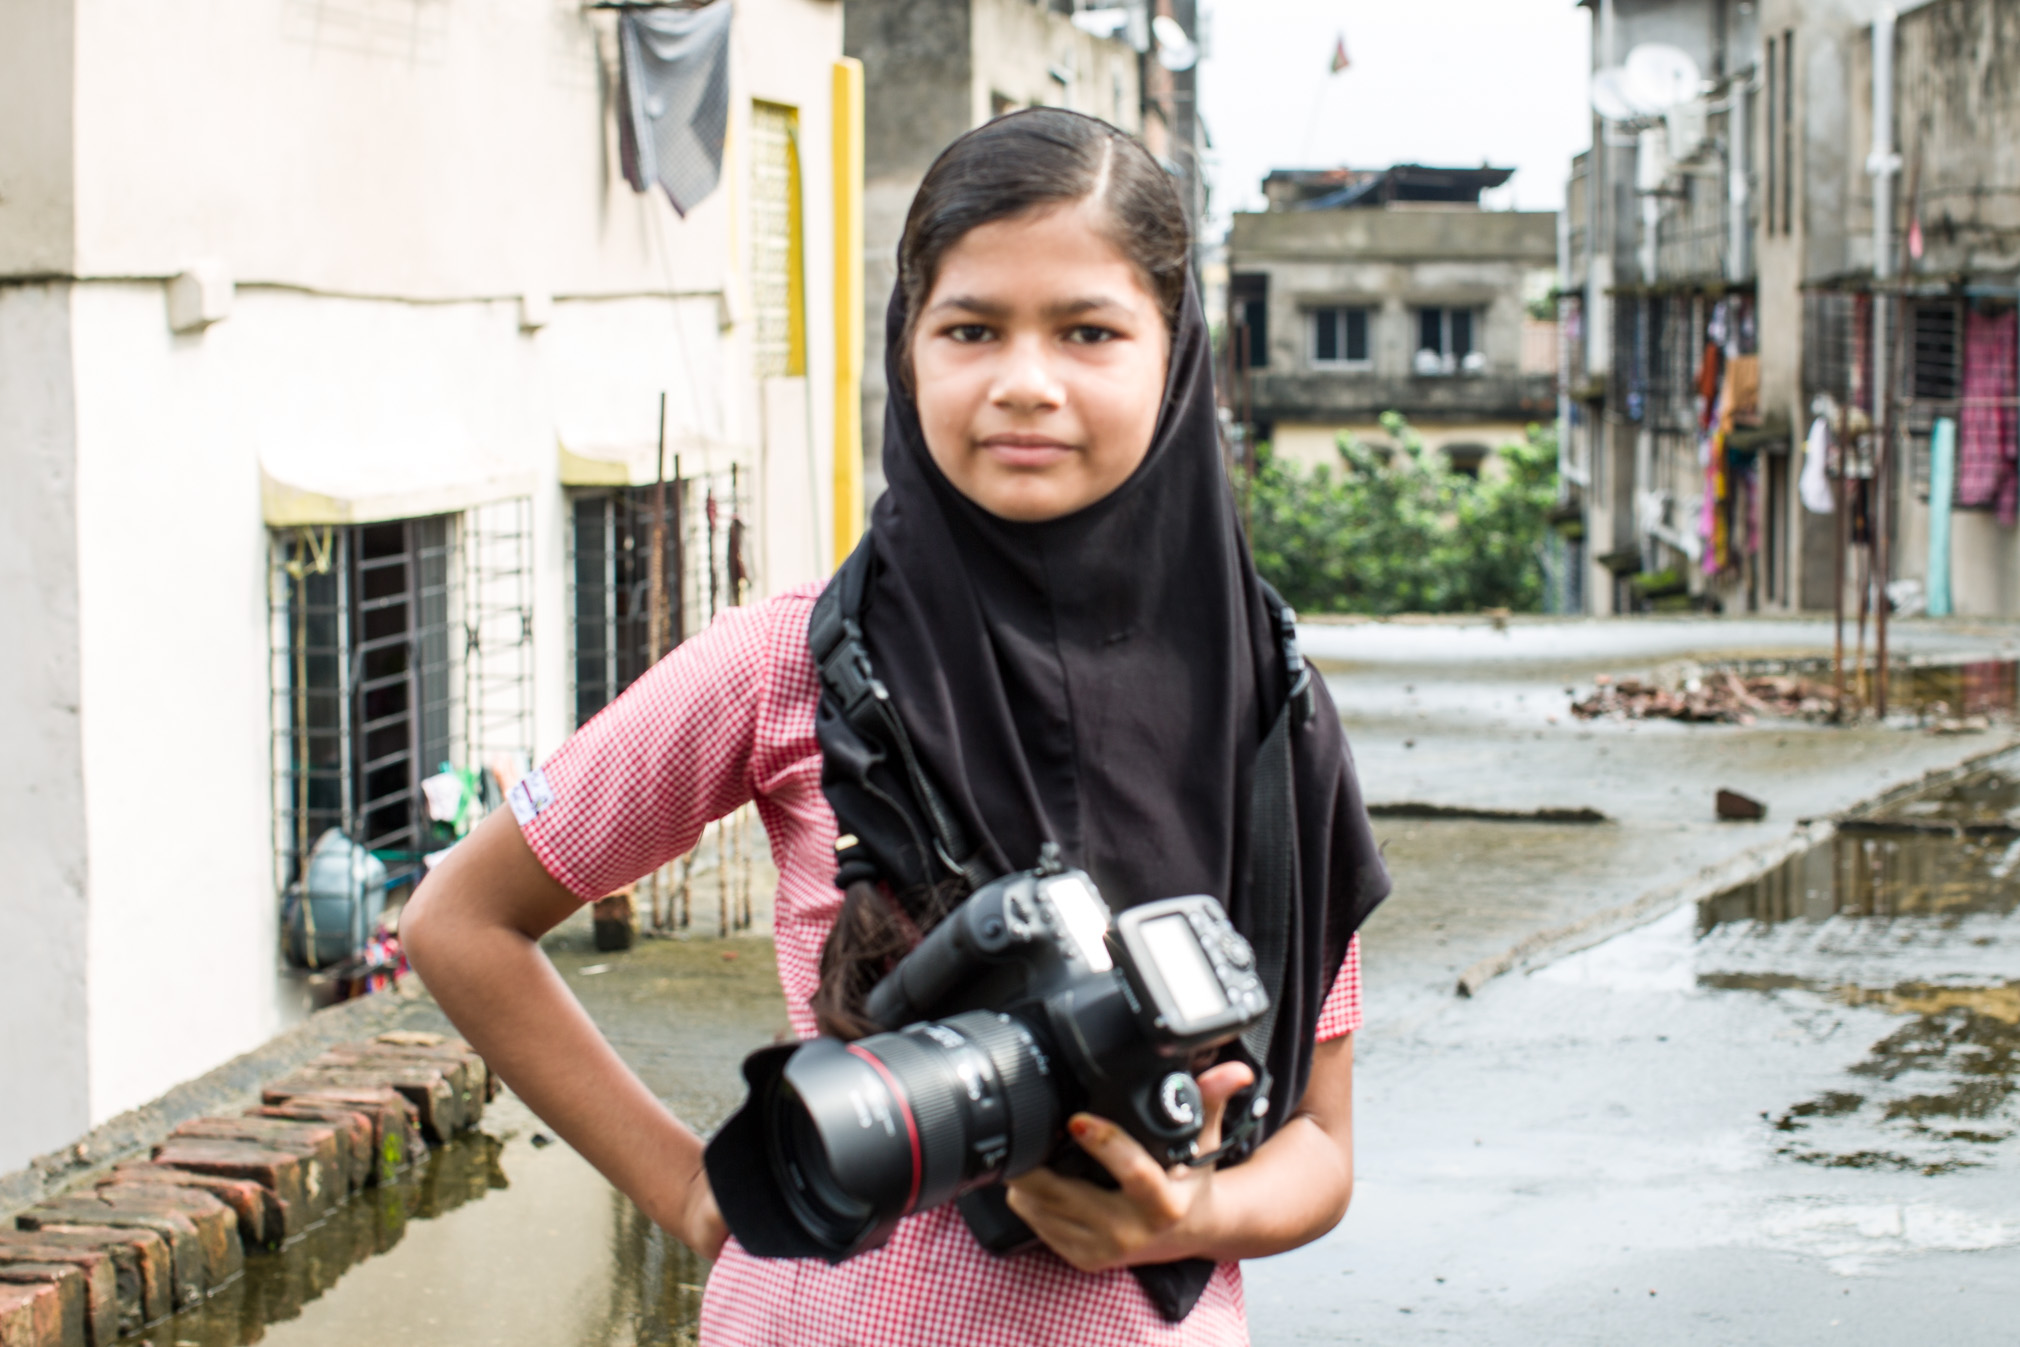 Schoolgirl with camera © Yasmine Kaddour